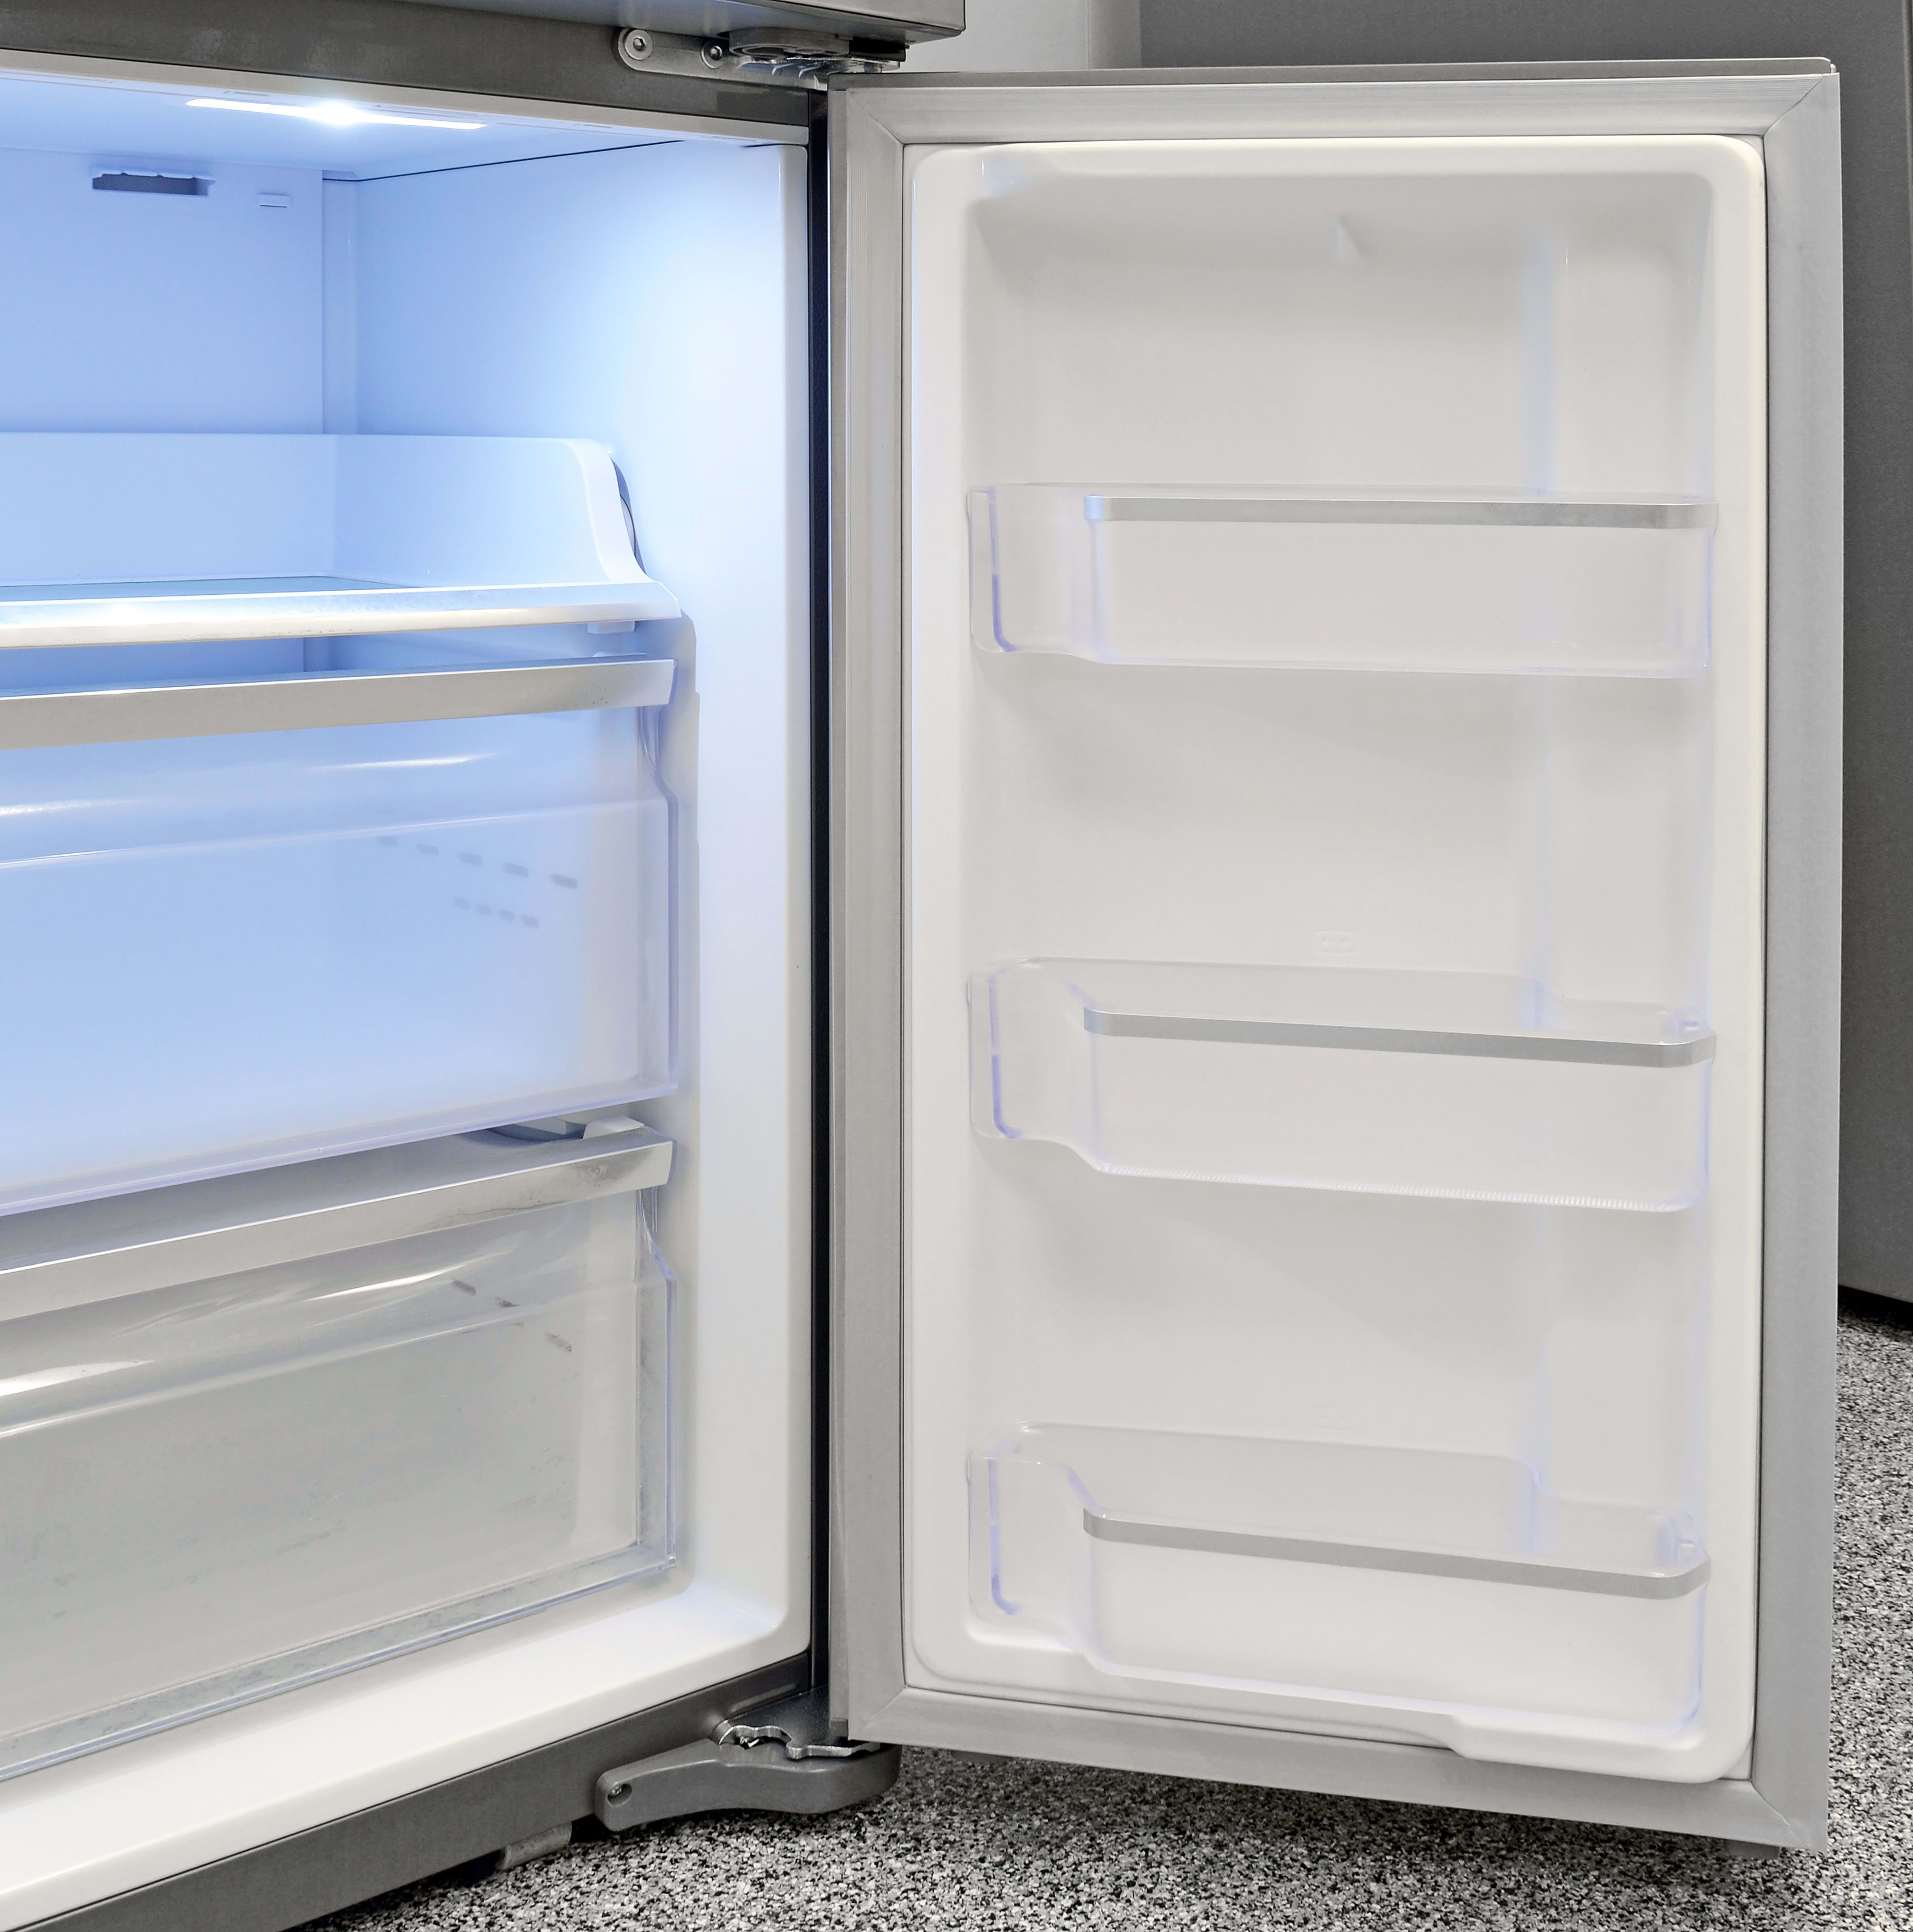 Door storage in the Samsung RF23J9011SR's adjustable section is identical to what you find in the freezer.